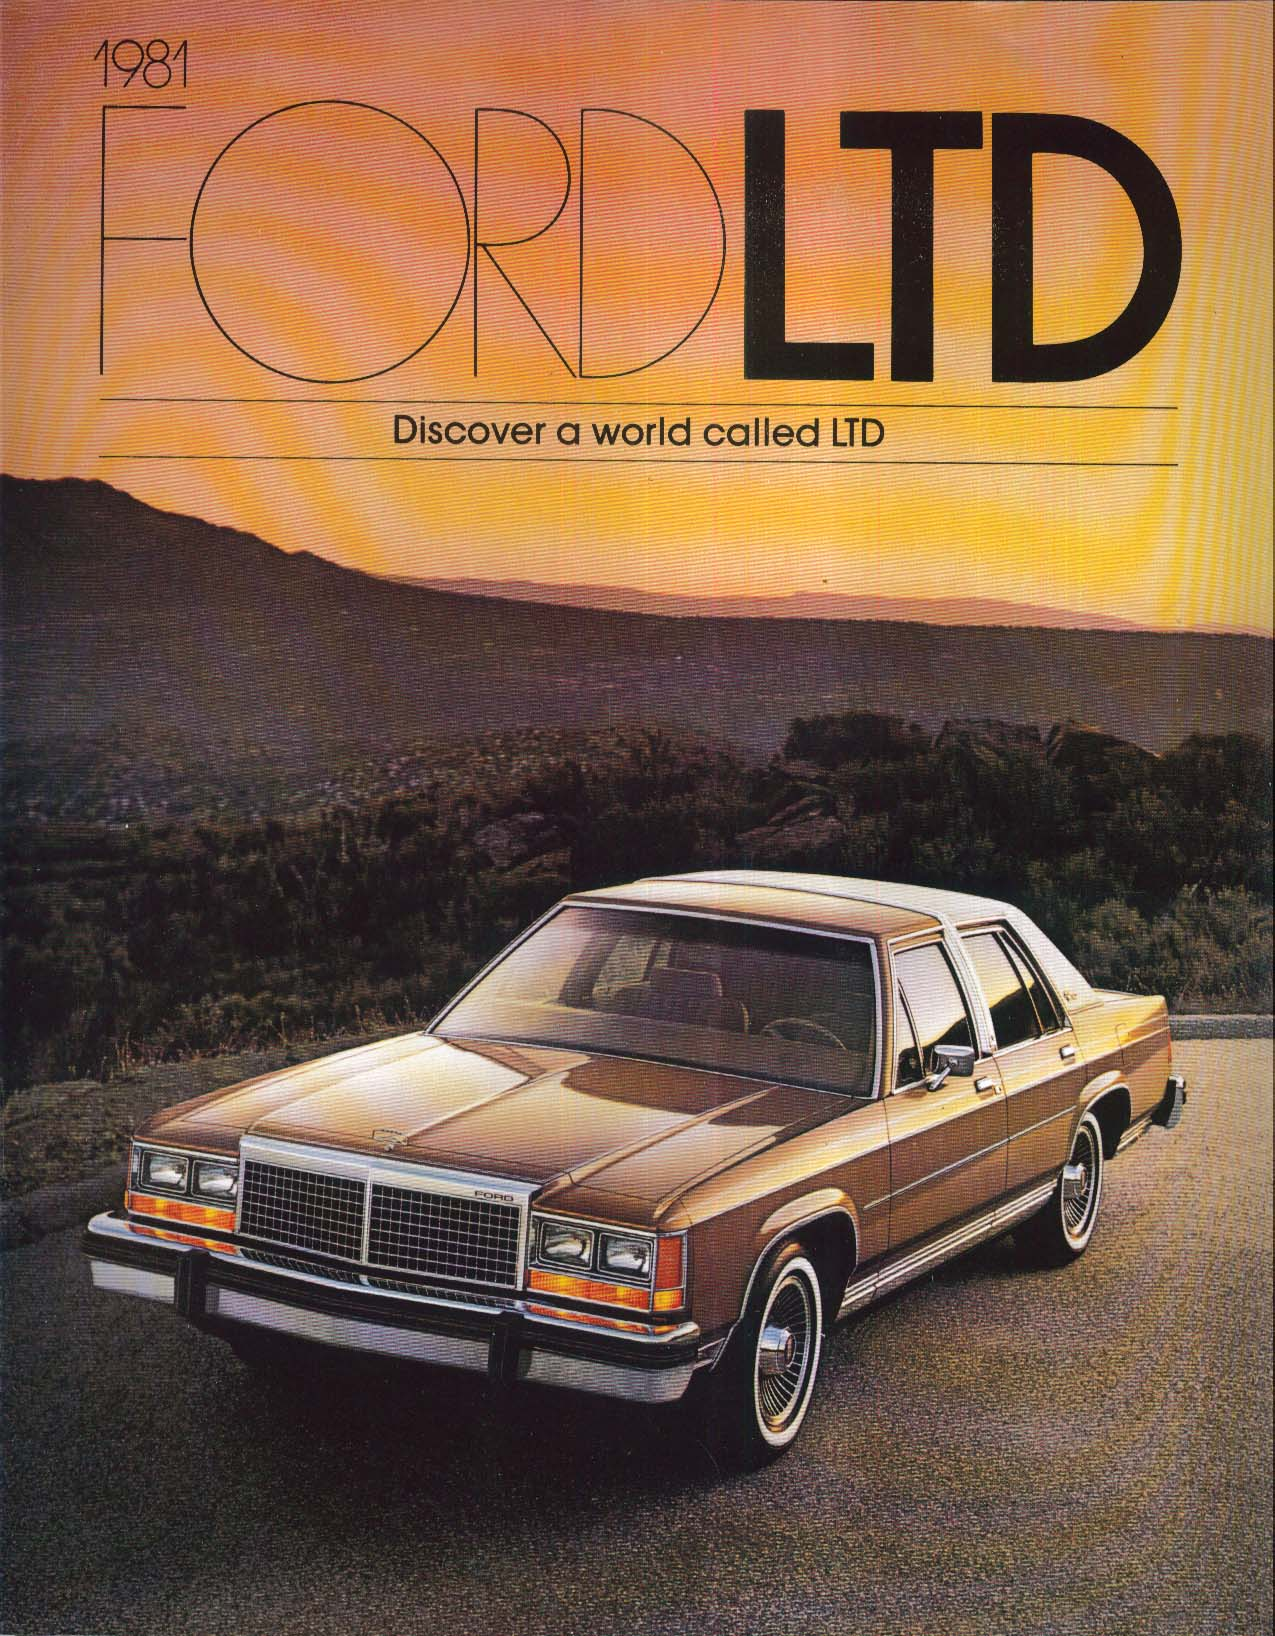 1981 Ford LTD catalog: Crown Victoria +